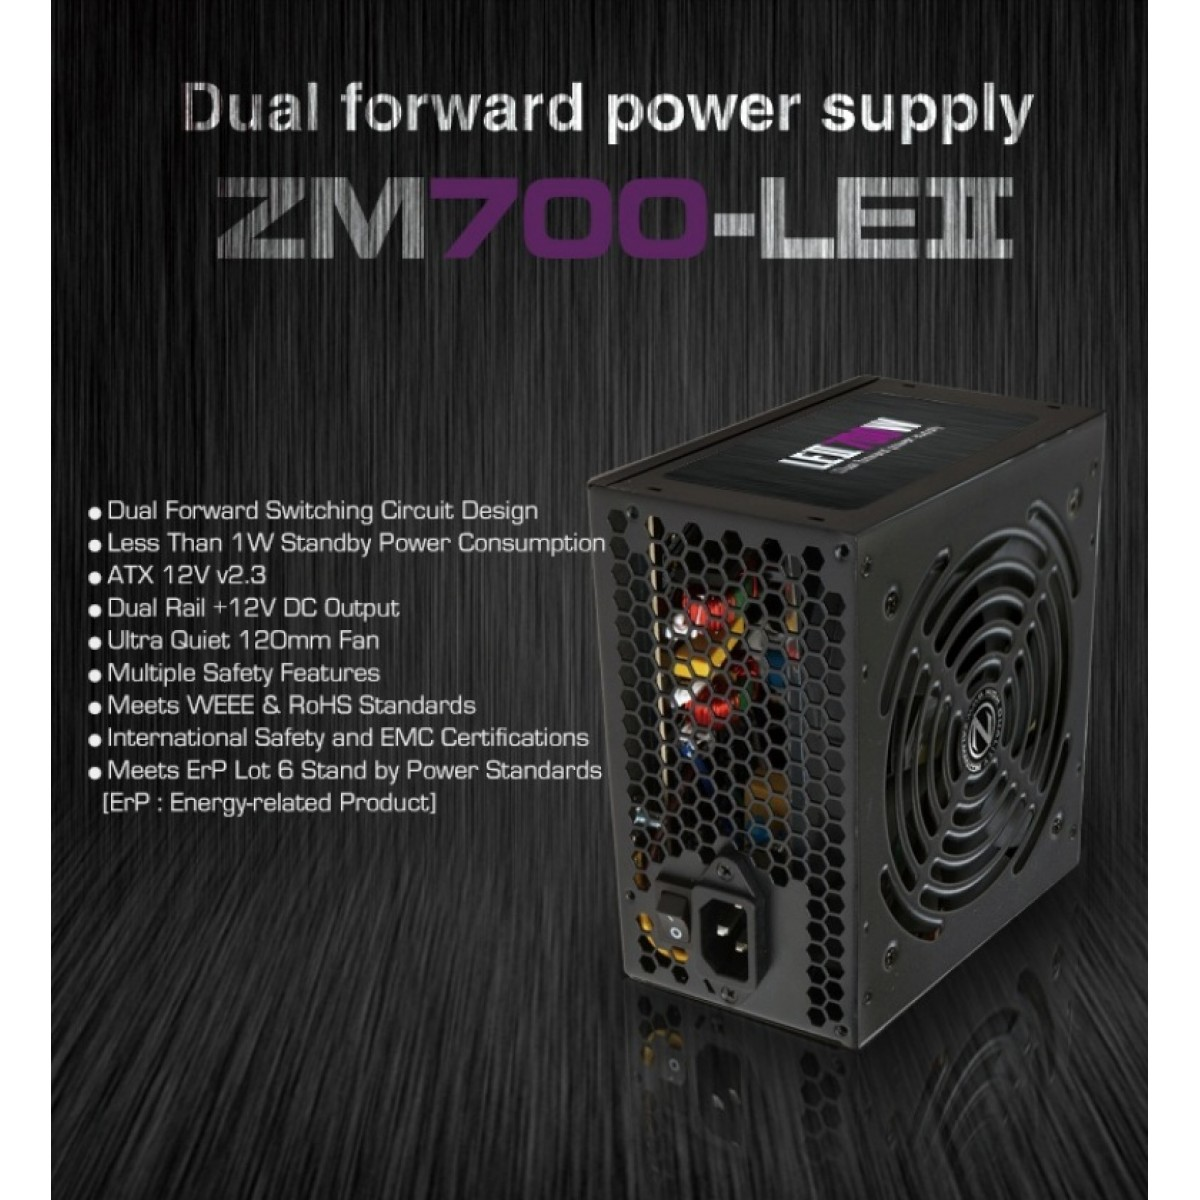 Zalman Zm700leii 700w Power Supply Taipei For Computers Jordan 12v Dual